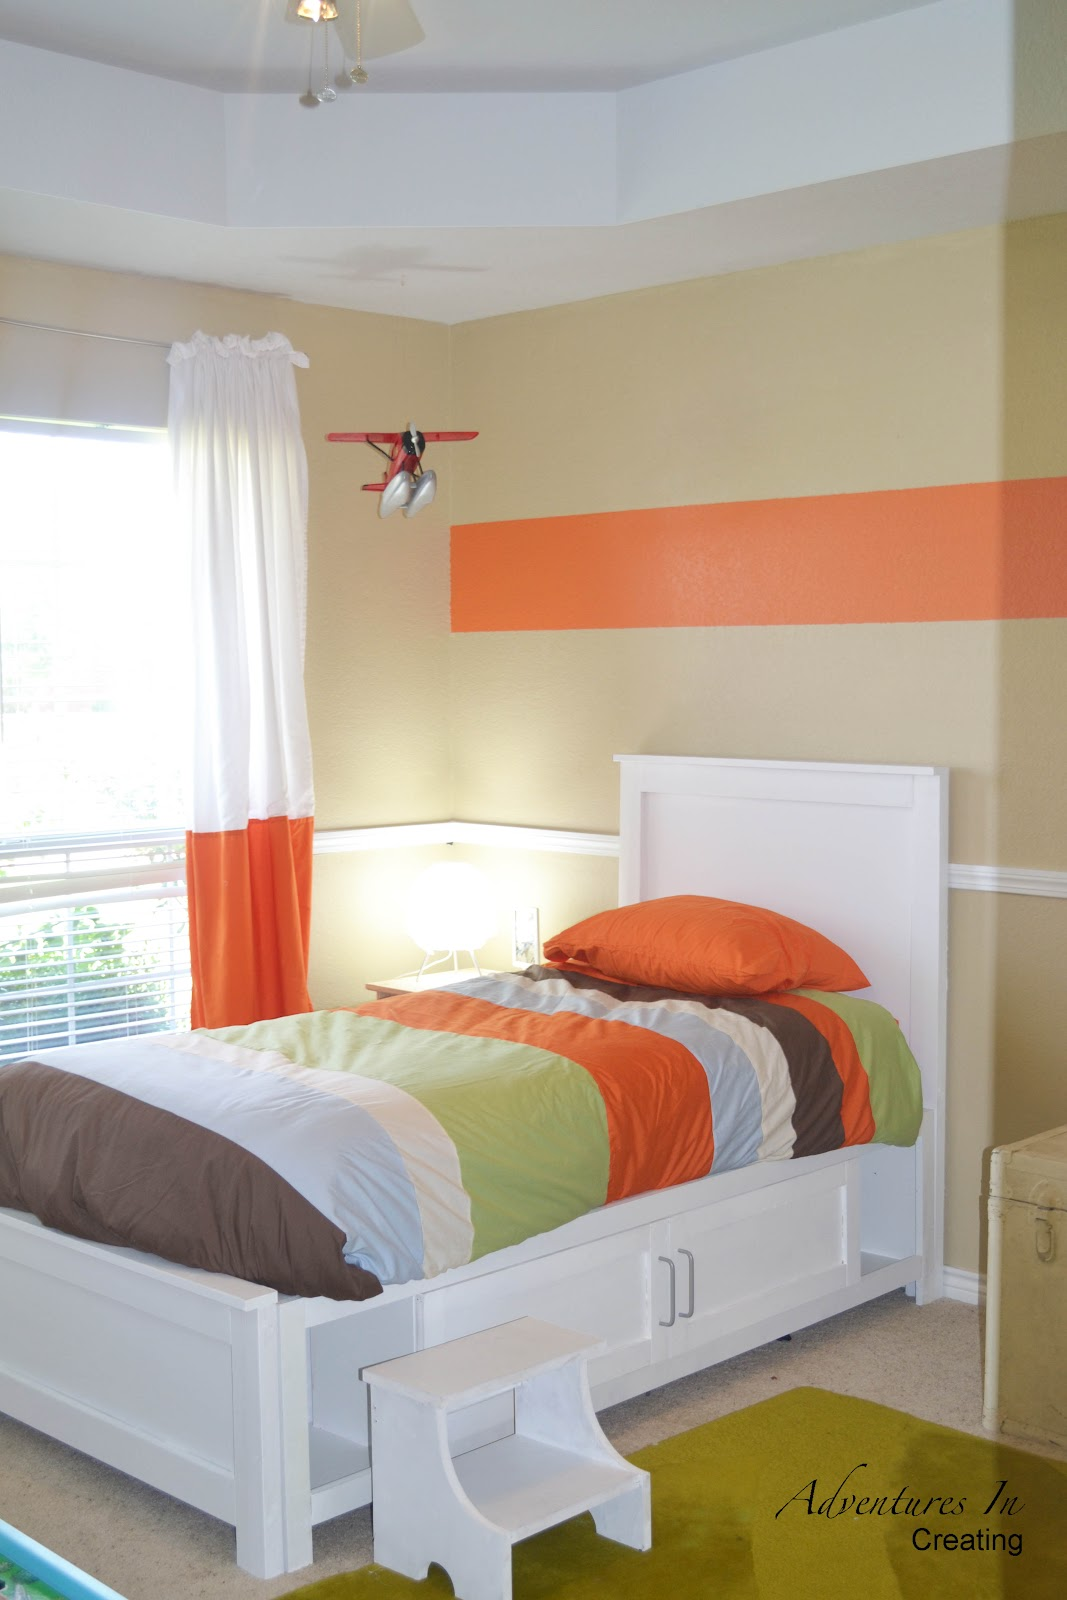 Boys bedroom with orange accents - Orange accents for bedroom ...